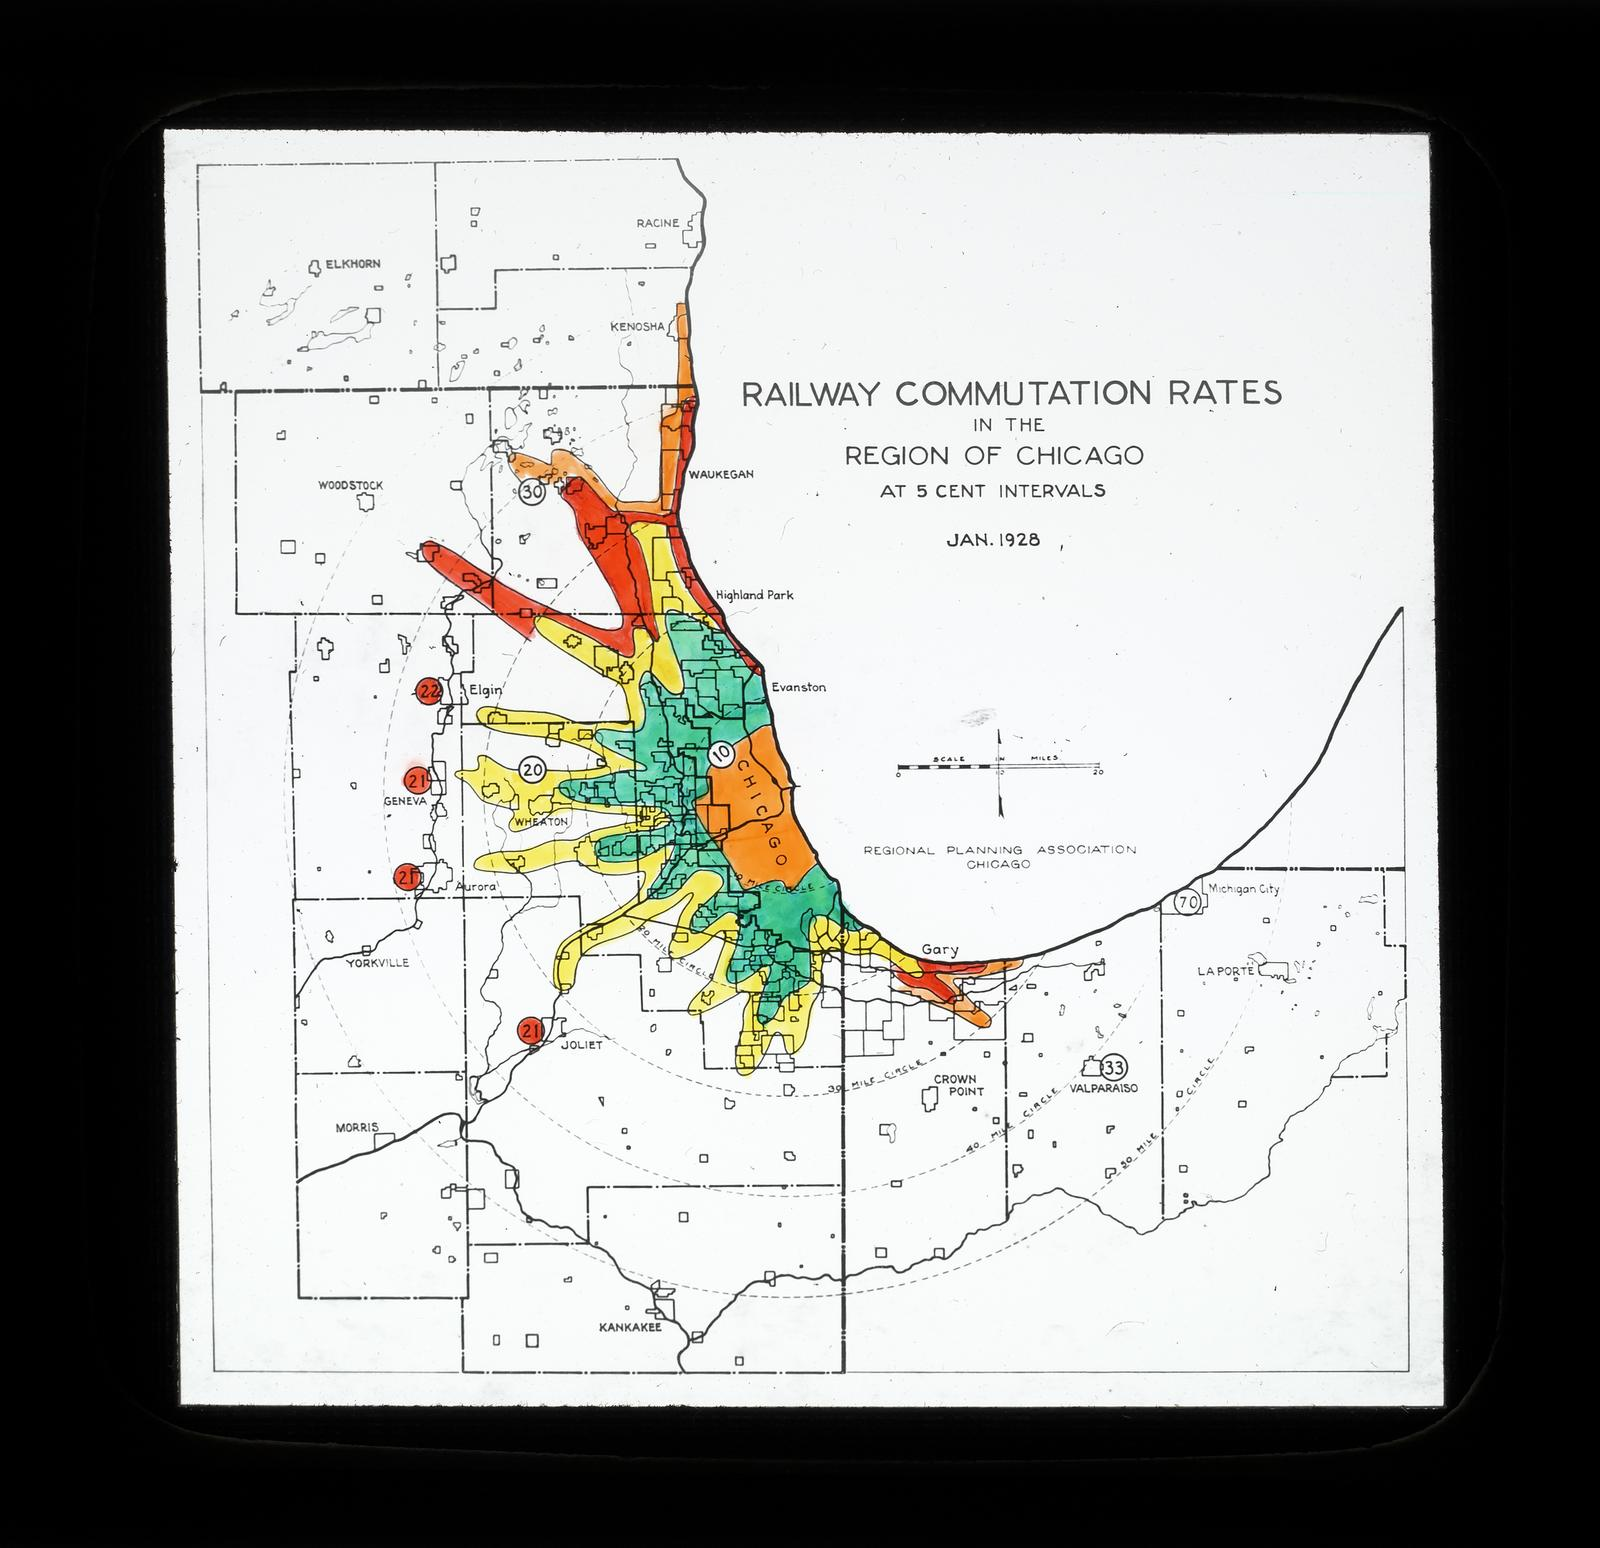 Railway Commutation Rates in the Region of Chicago